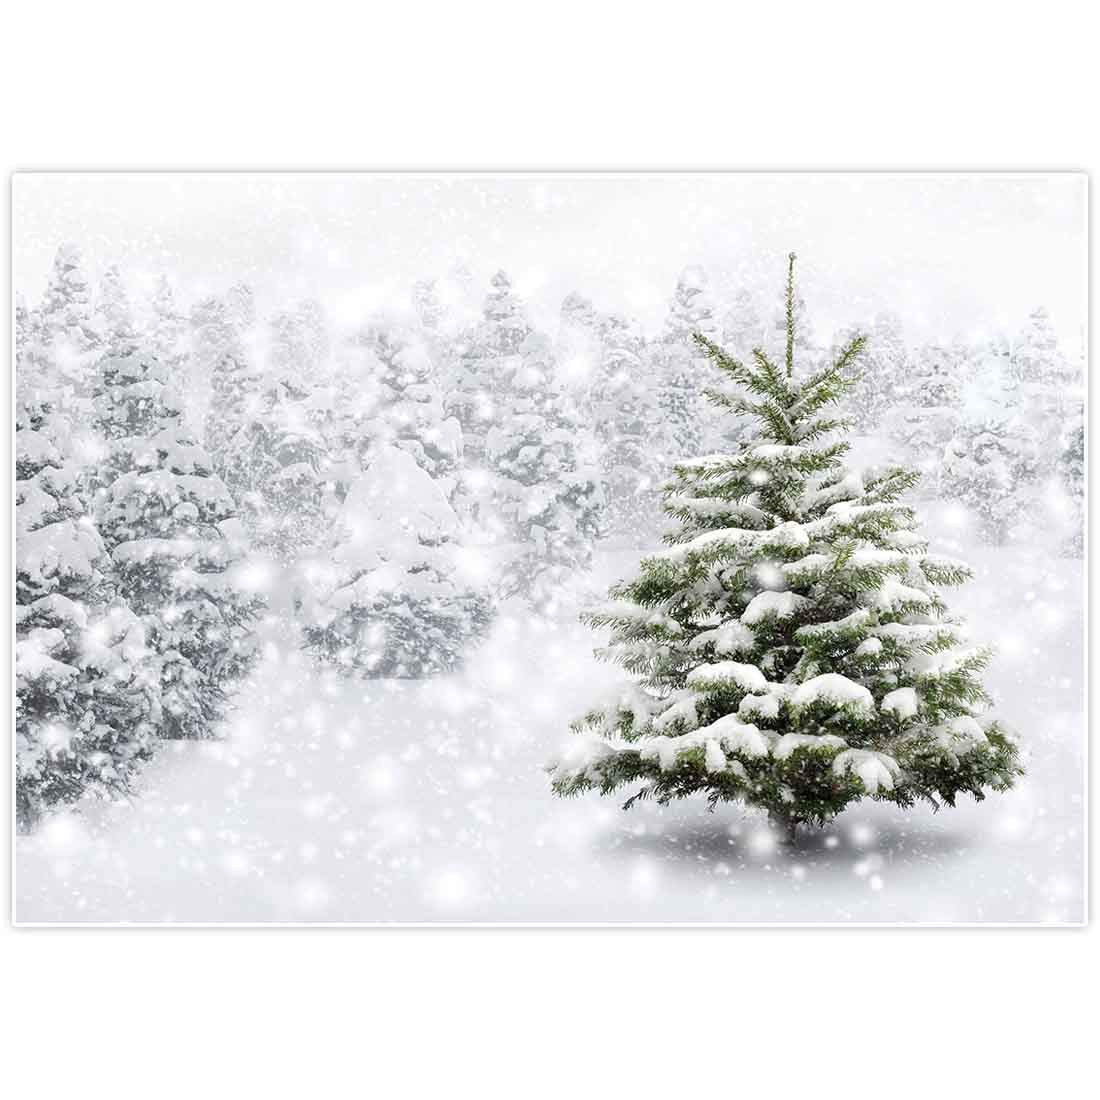 Allenjoy 7x5ft Christmas Xmas New Year Photography Backdrop Background Snow Trees Holiday Party Decorations Winter Forest Baby Shower Snowflake Pine Snowy Photo Booth Props Supplies